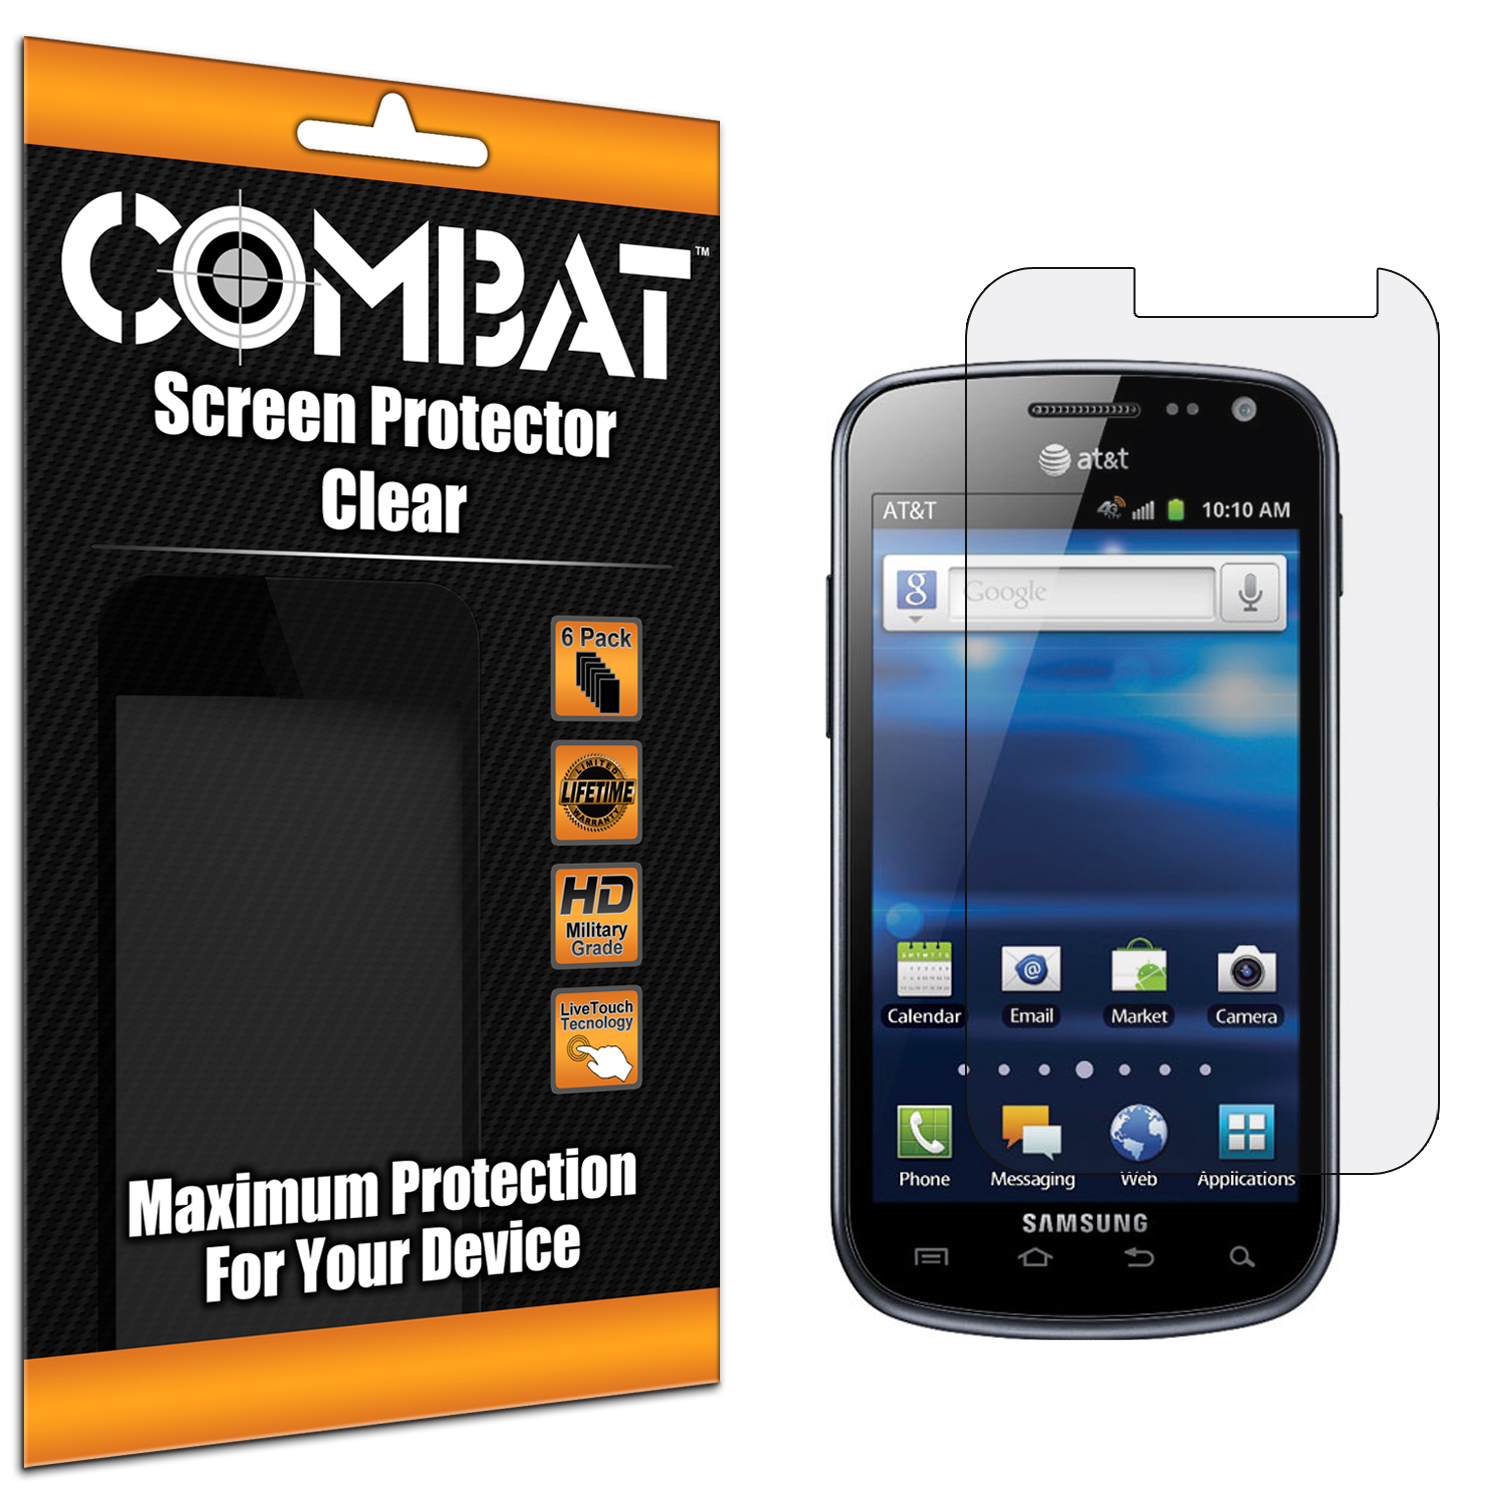 Pantech Burst P9070 Combat 6 Pack HD Clear Screen Protector